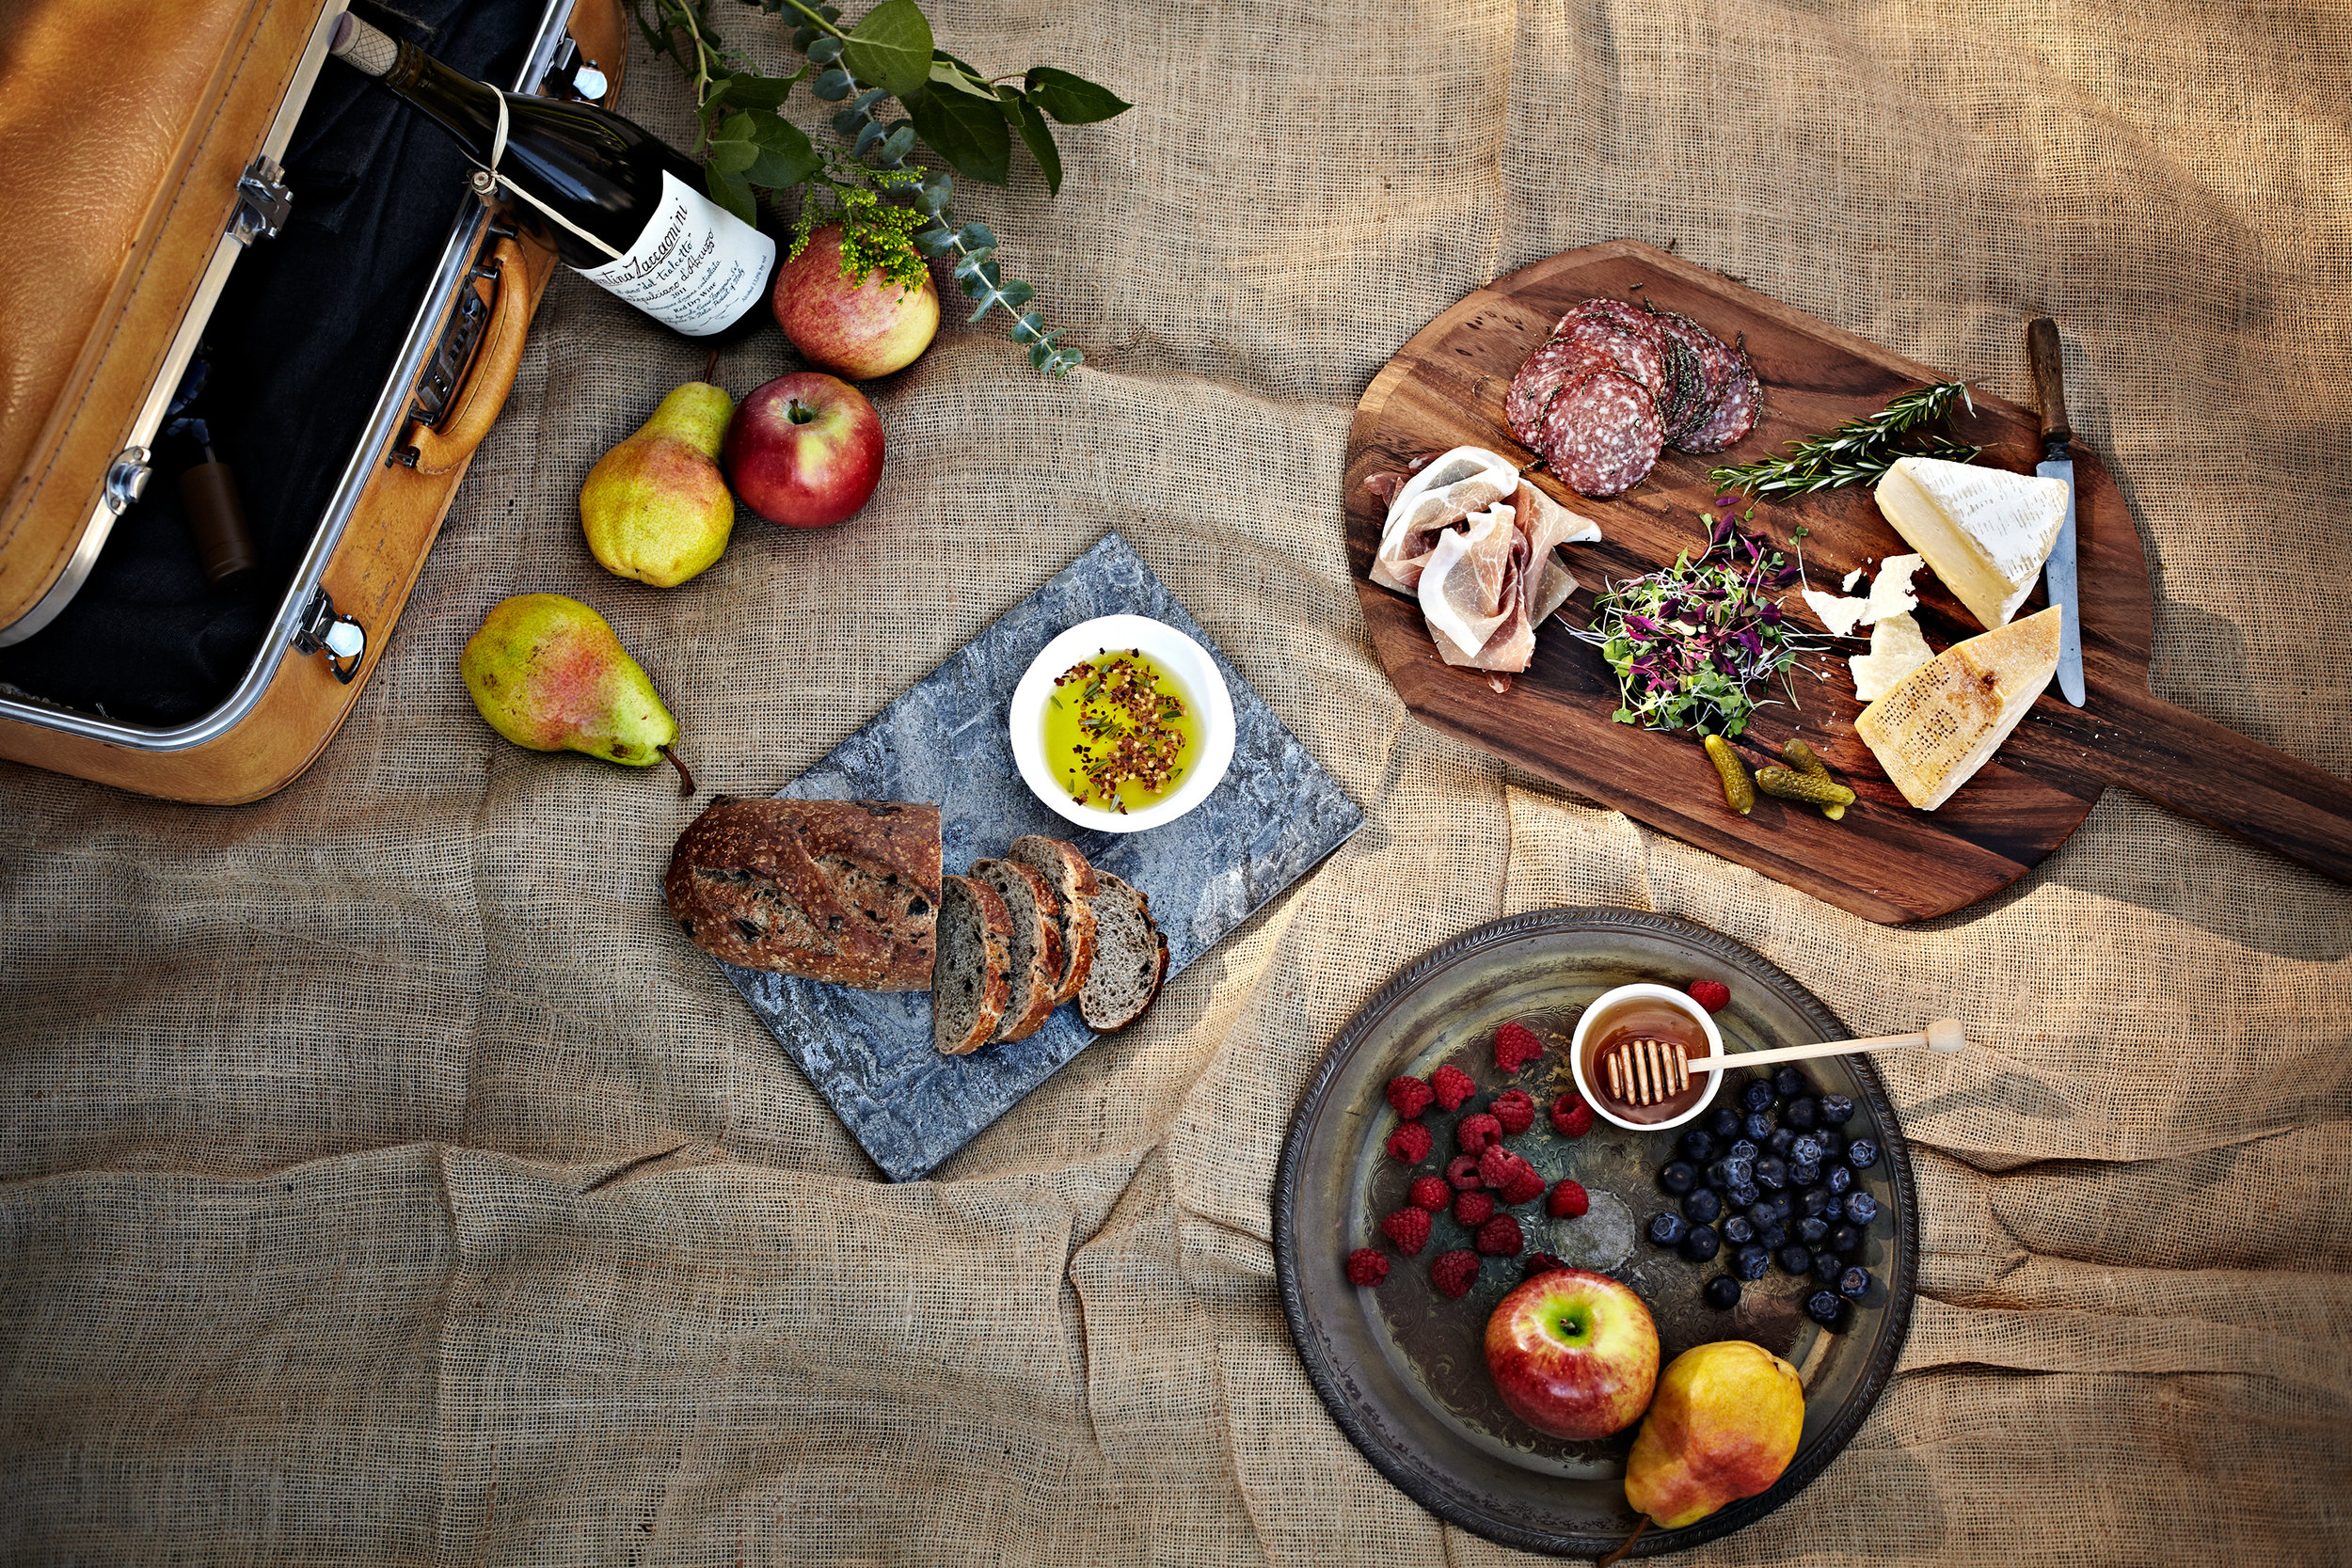 Spanish picnic with dappled light, charcuterie board, fruit, and wine